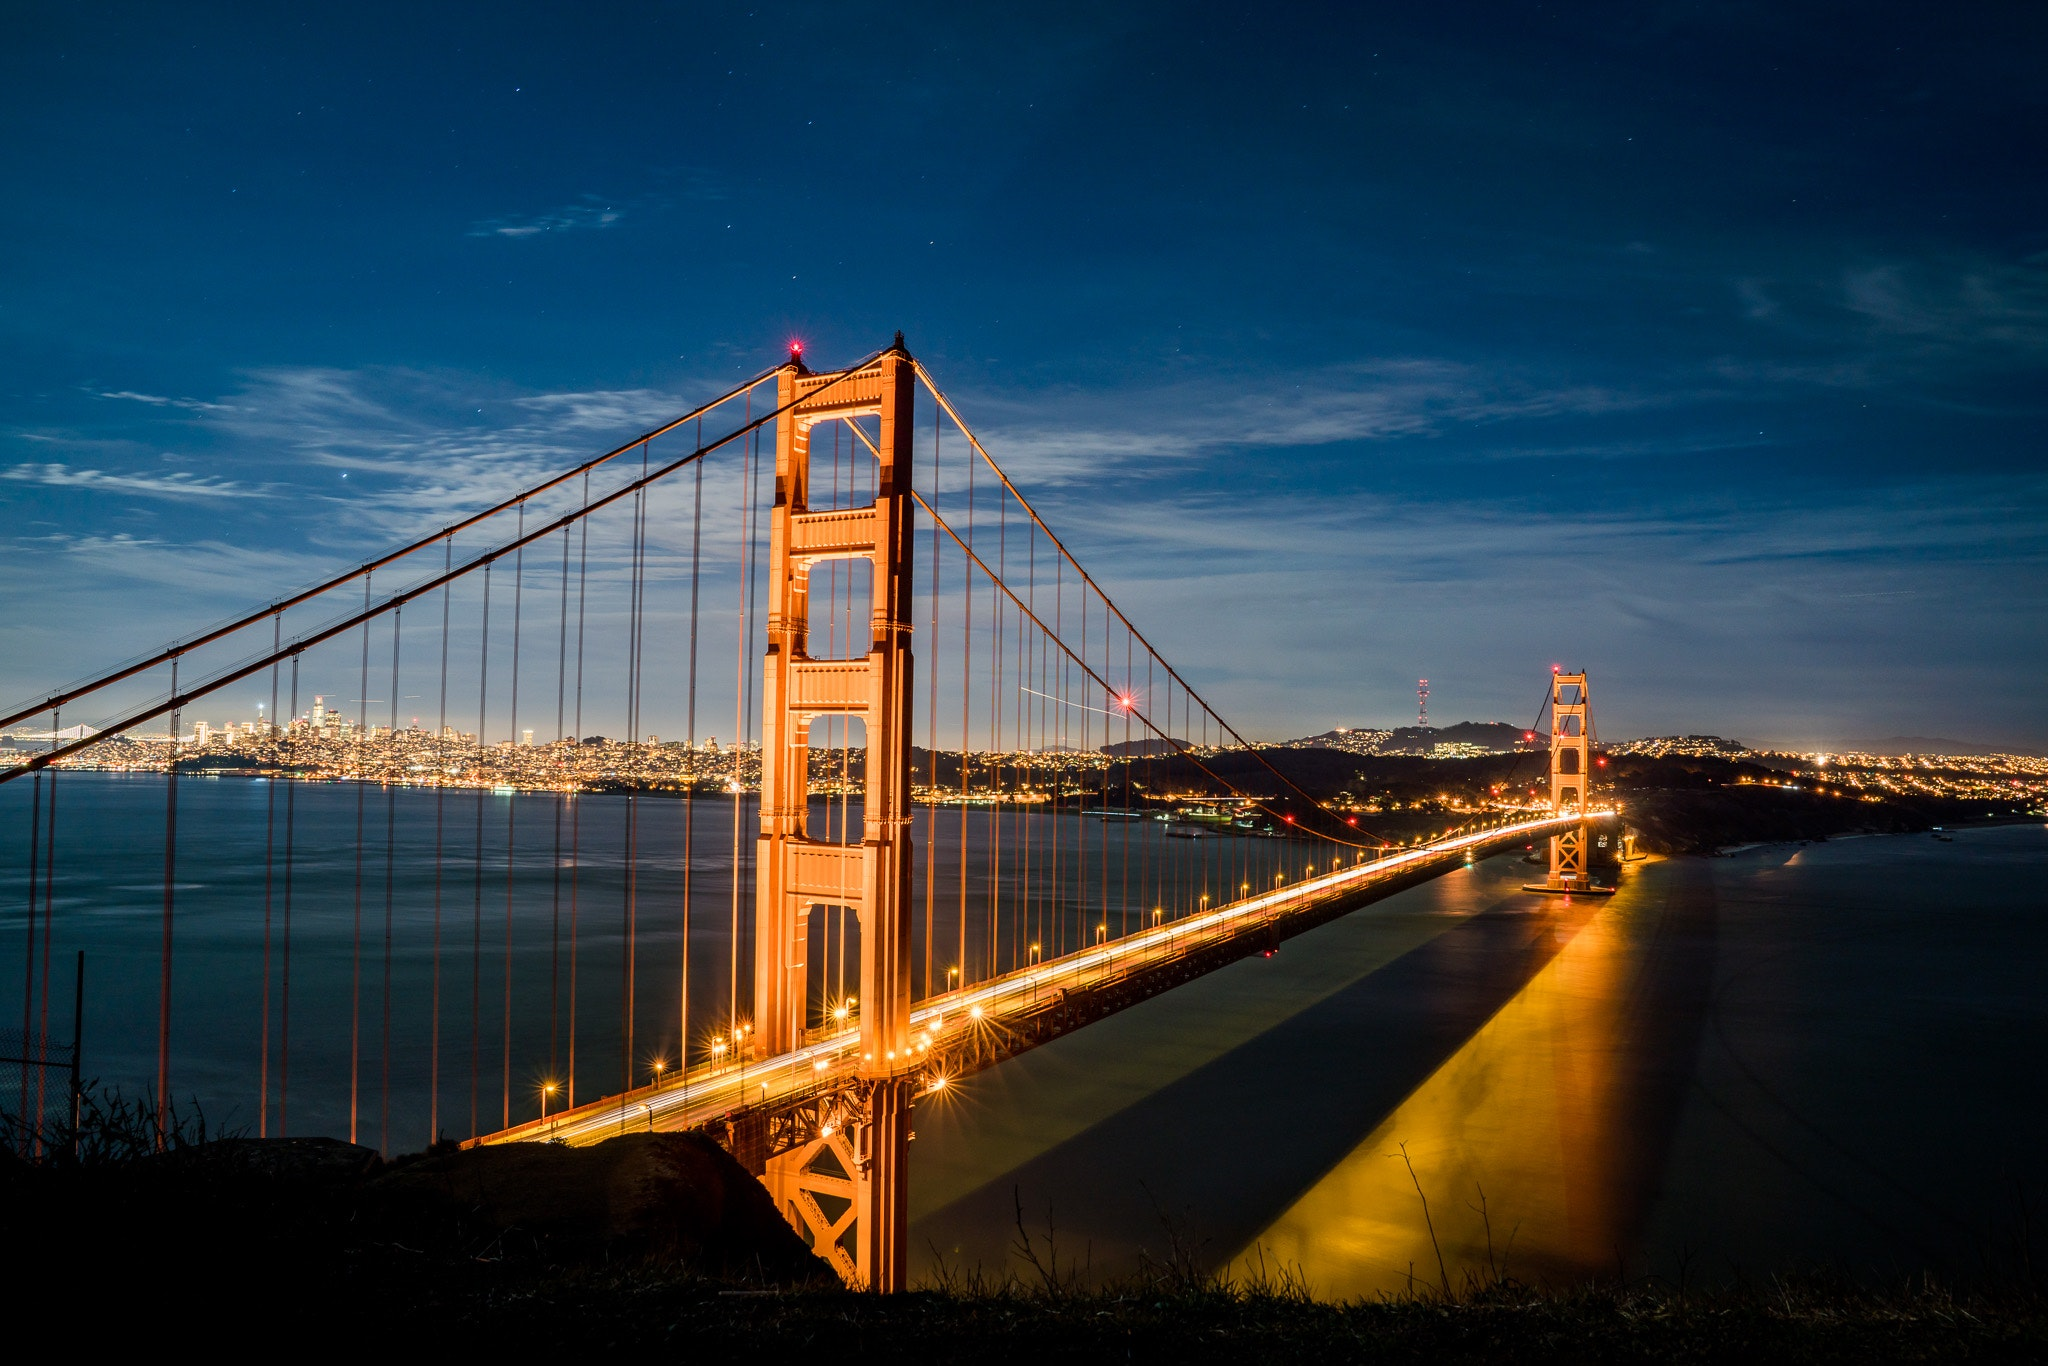 Golden Gate Bridge, Architecture, Sky, Urban, Travel, HQ Photo